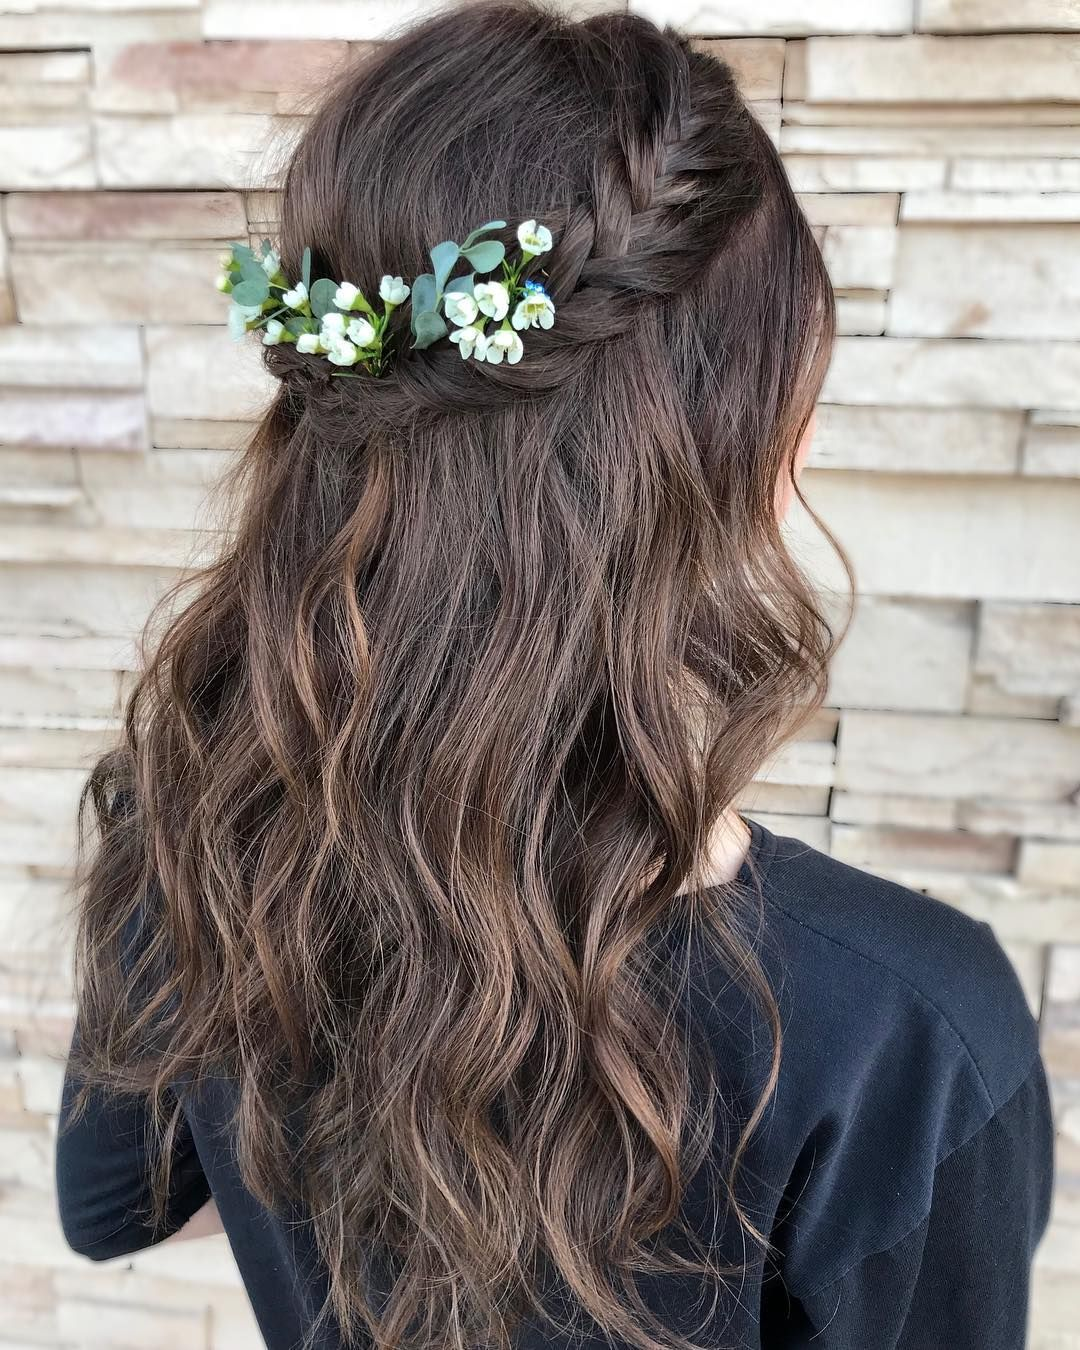 Wedding hairstyle. Half updo with braid on the side. Half updo with headband. We... - Tami Griffin - #Braid #Griffin #Hairstyle #Headband #side #Tami #Updo #Wedding